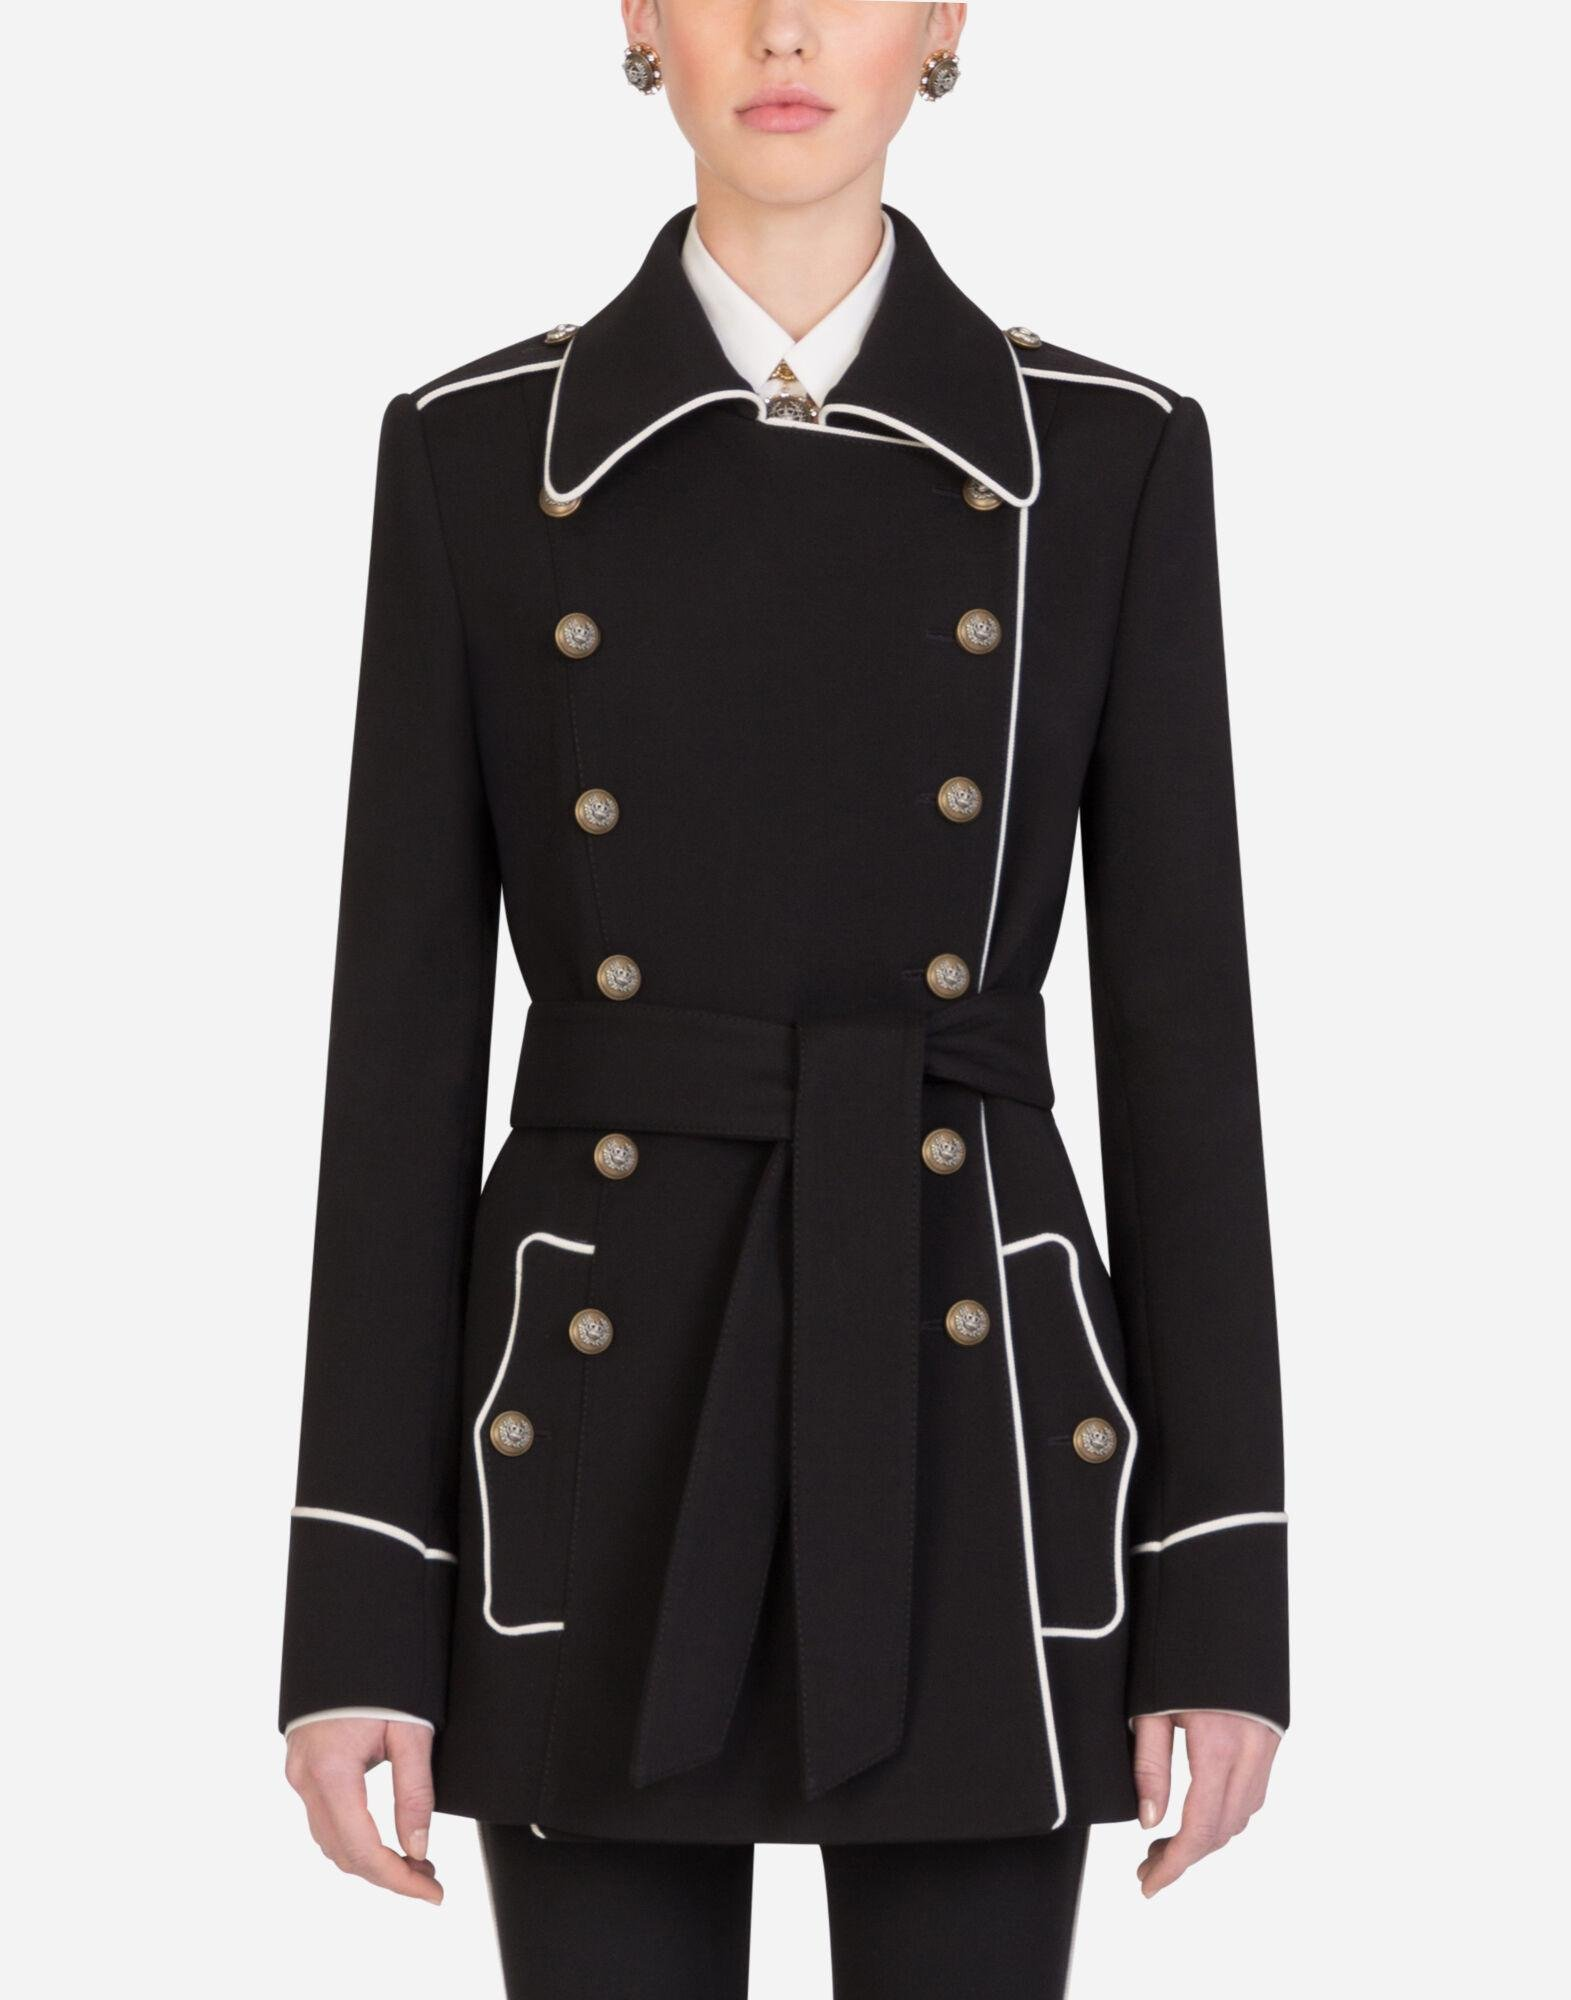 Woolen peacoat with decorative buttons